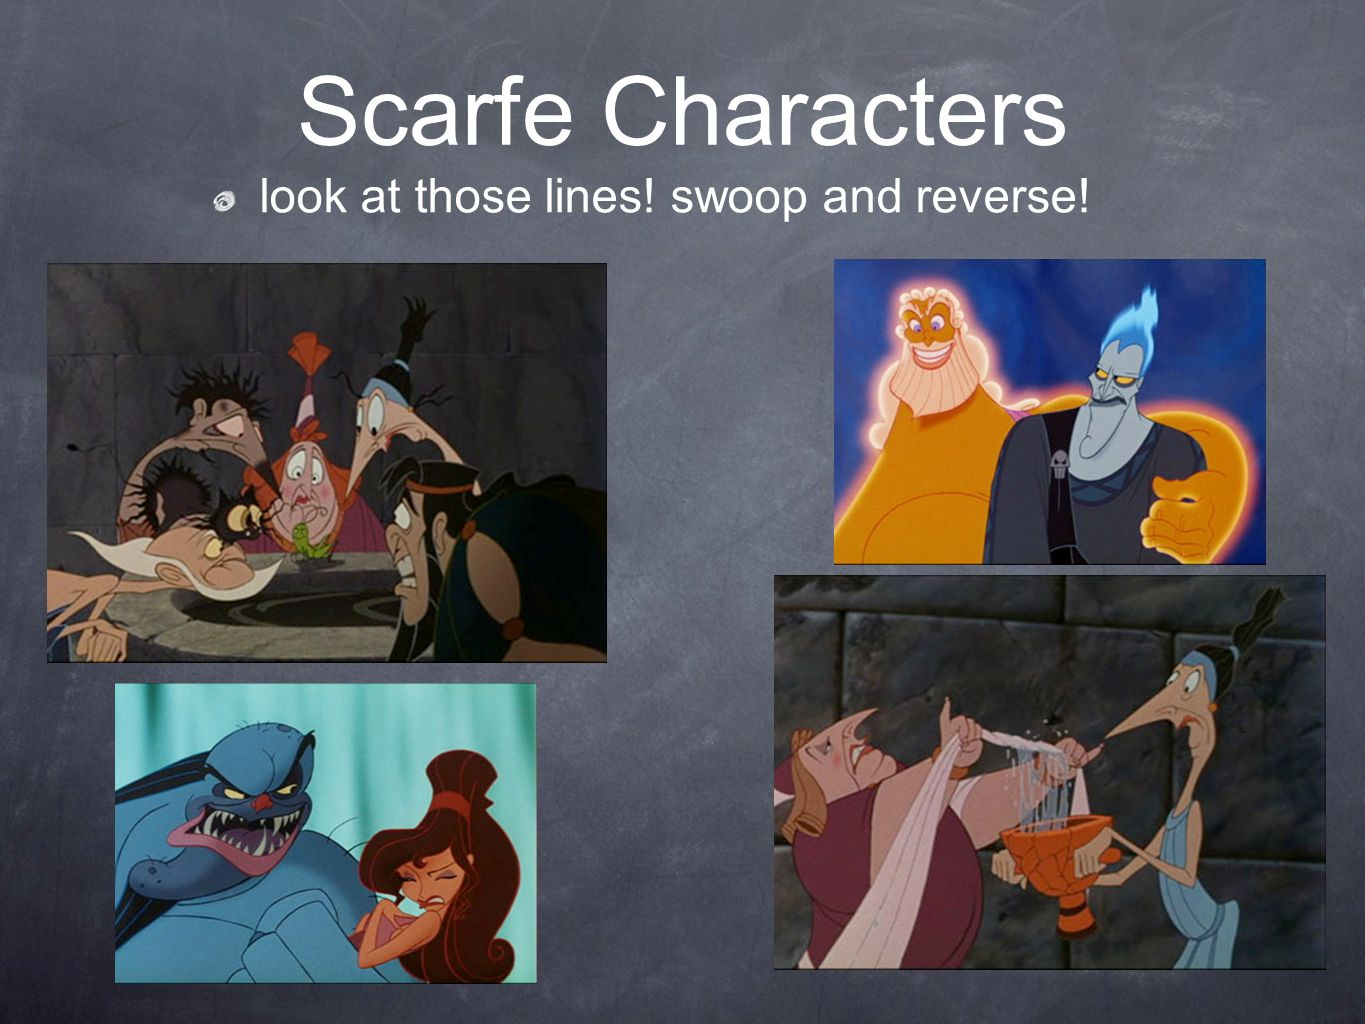 Scarfe Characters look at those lines! swoop and reverse!